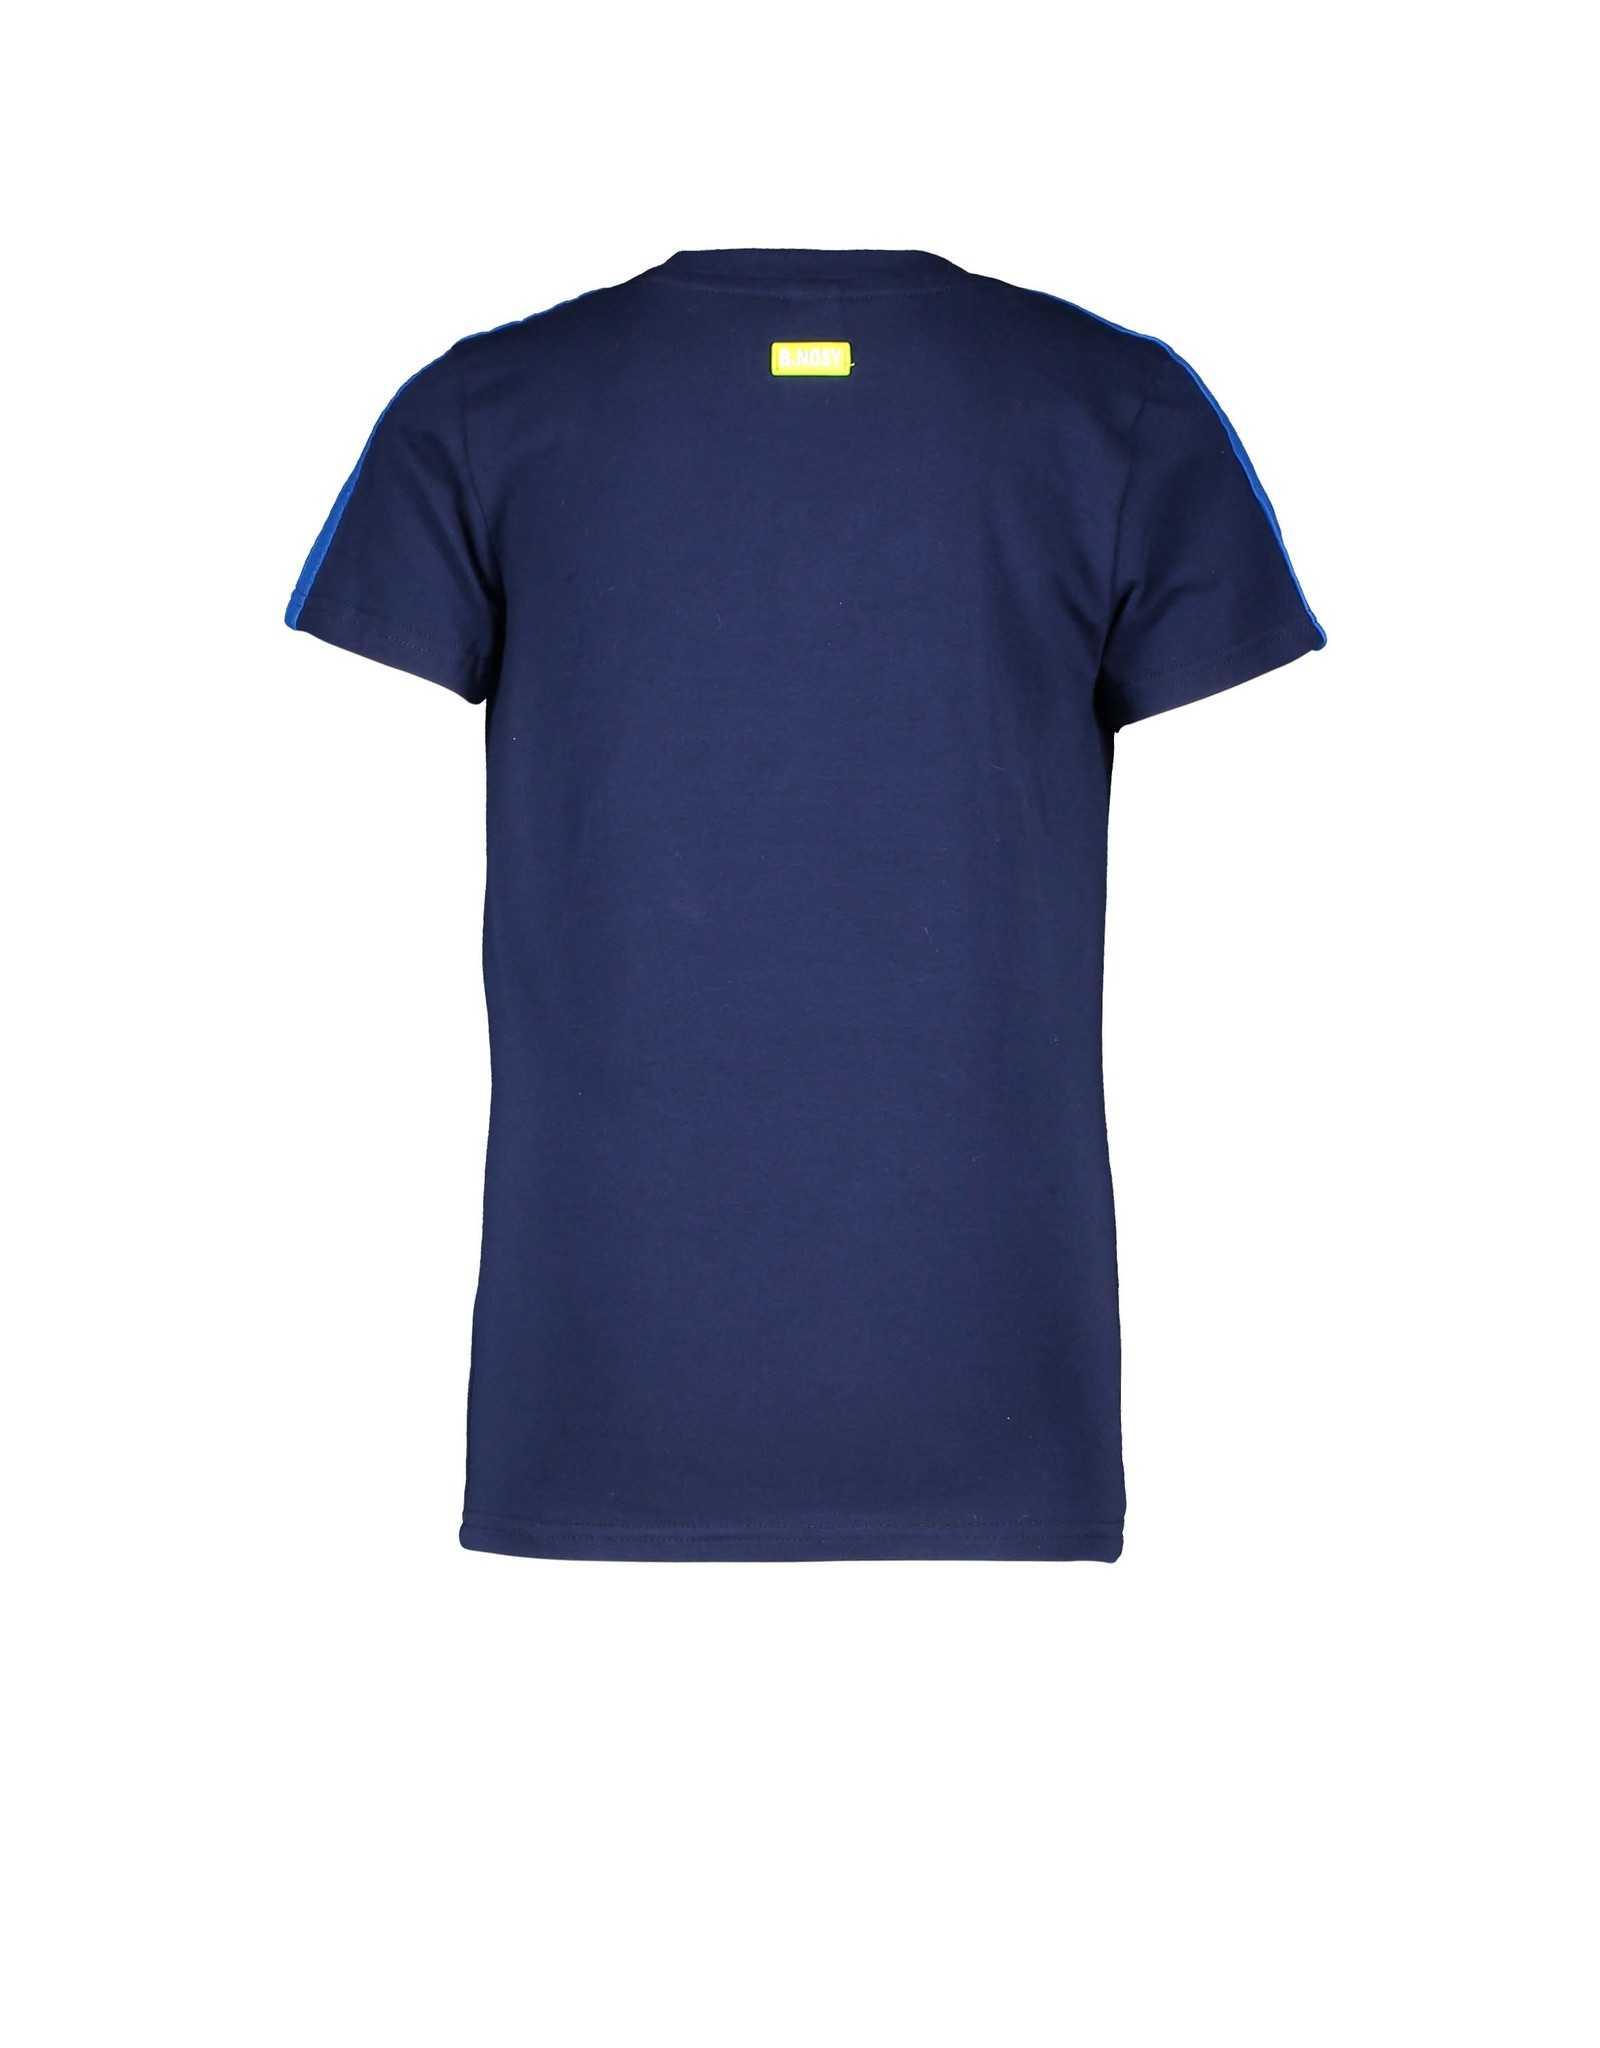 B-Nosy Boys ss shirt with slanted top part and sunglass embro, space blue